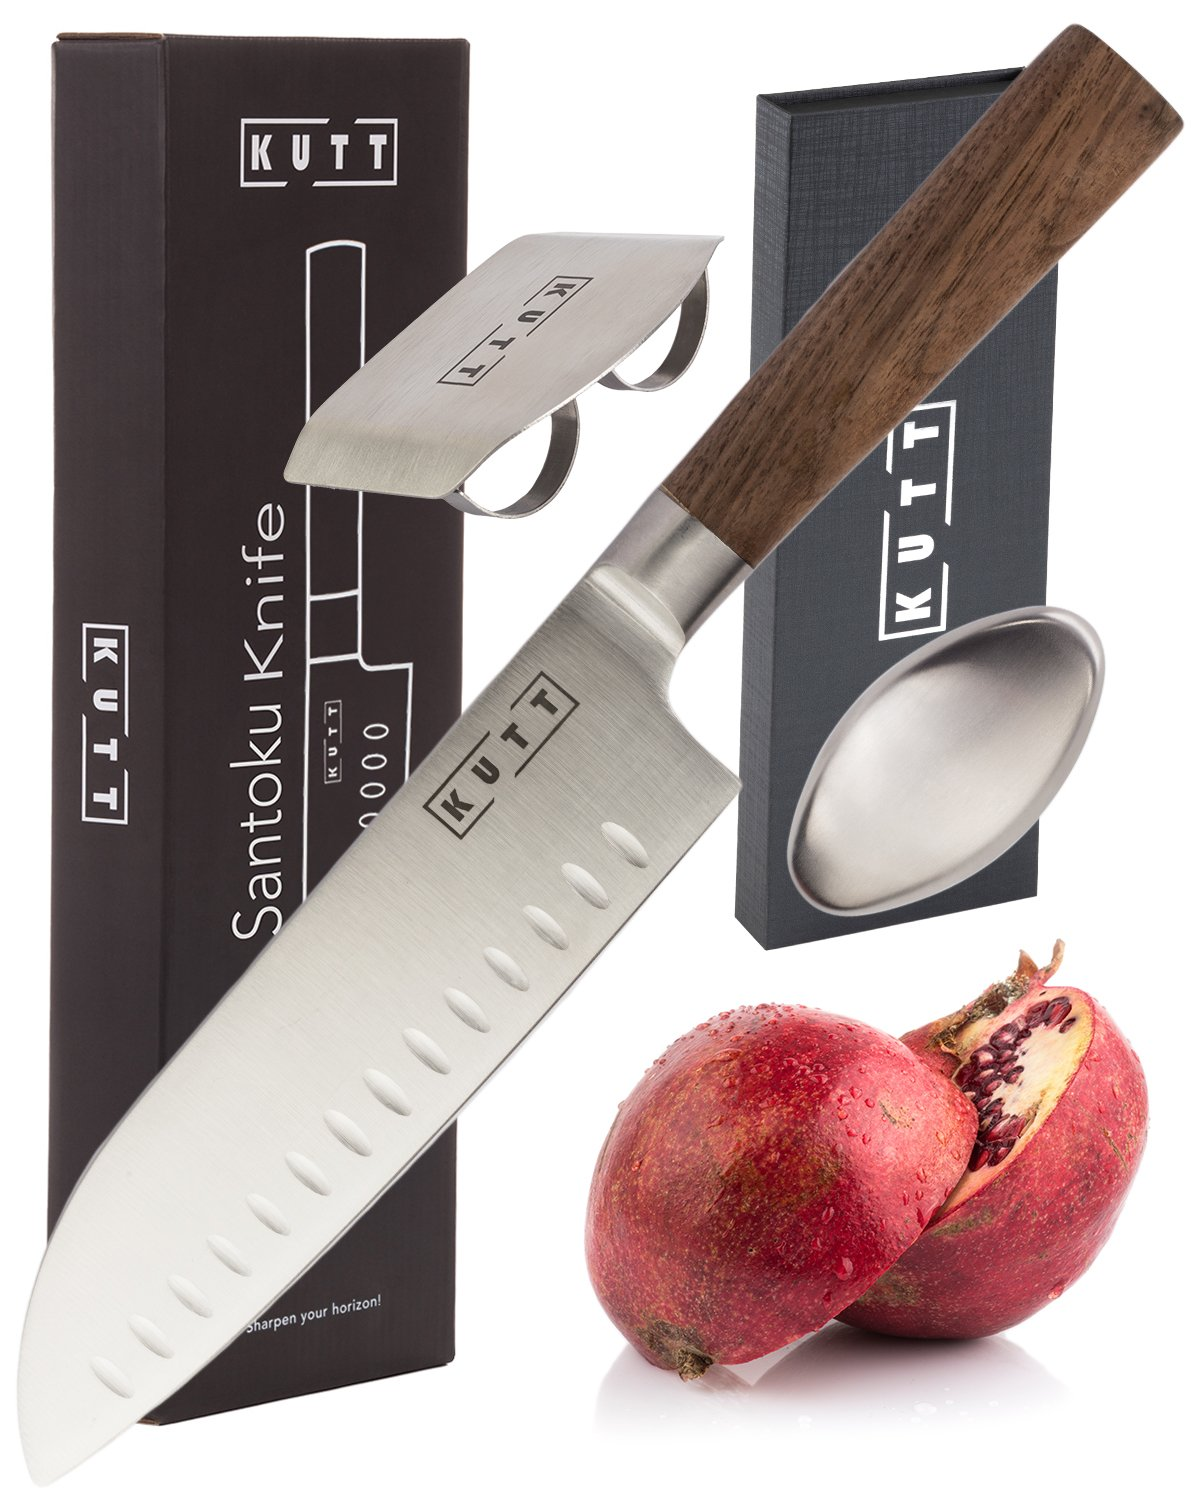 Kutt Santoku Knife | Razor Sharp and Rust-Free Professional Kitchen Knife | 7 Inch Chef's Knife German Stainless Steel Blade | Odor Remover and Finger Guard included in Luxury Gift Box